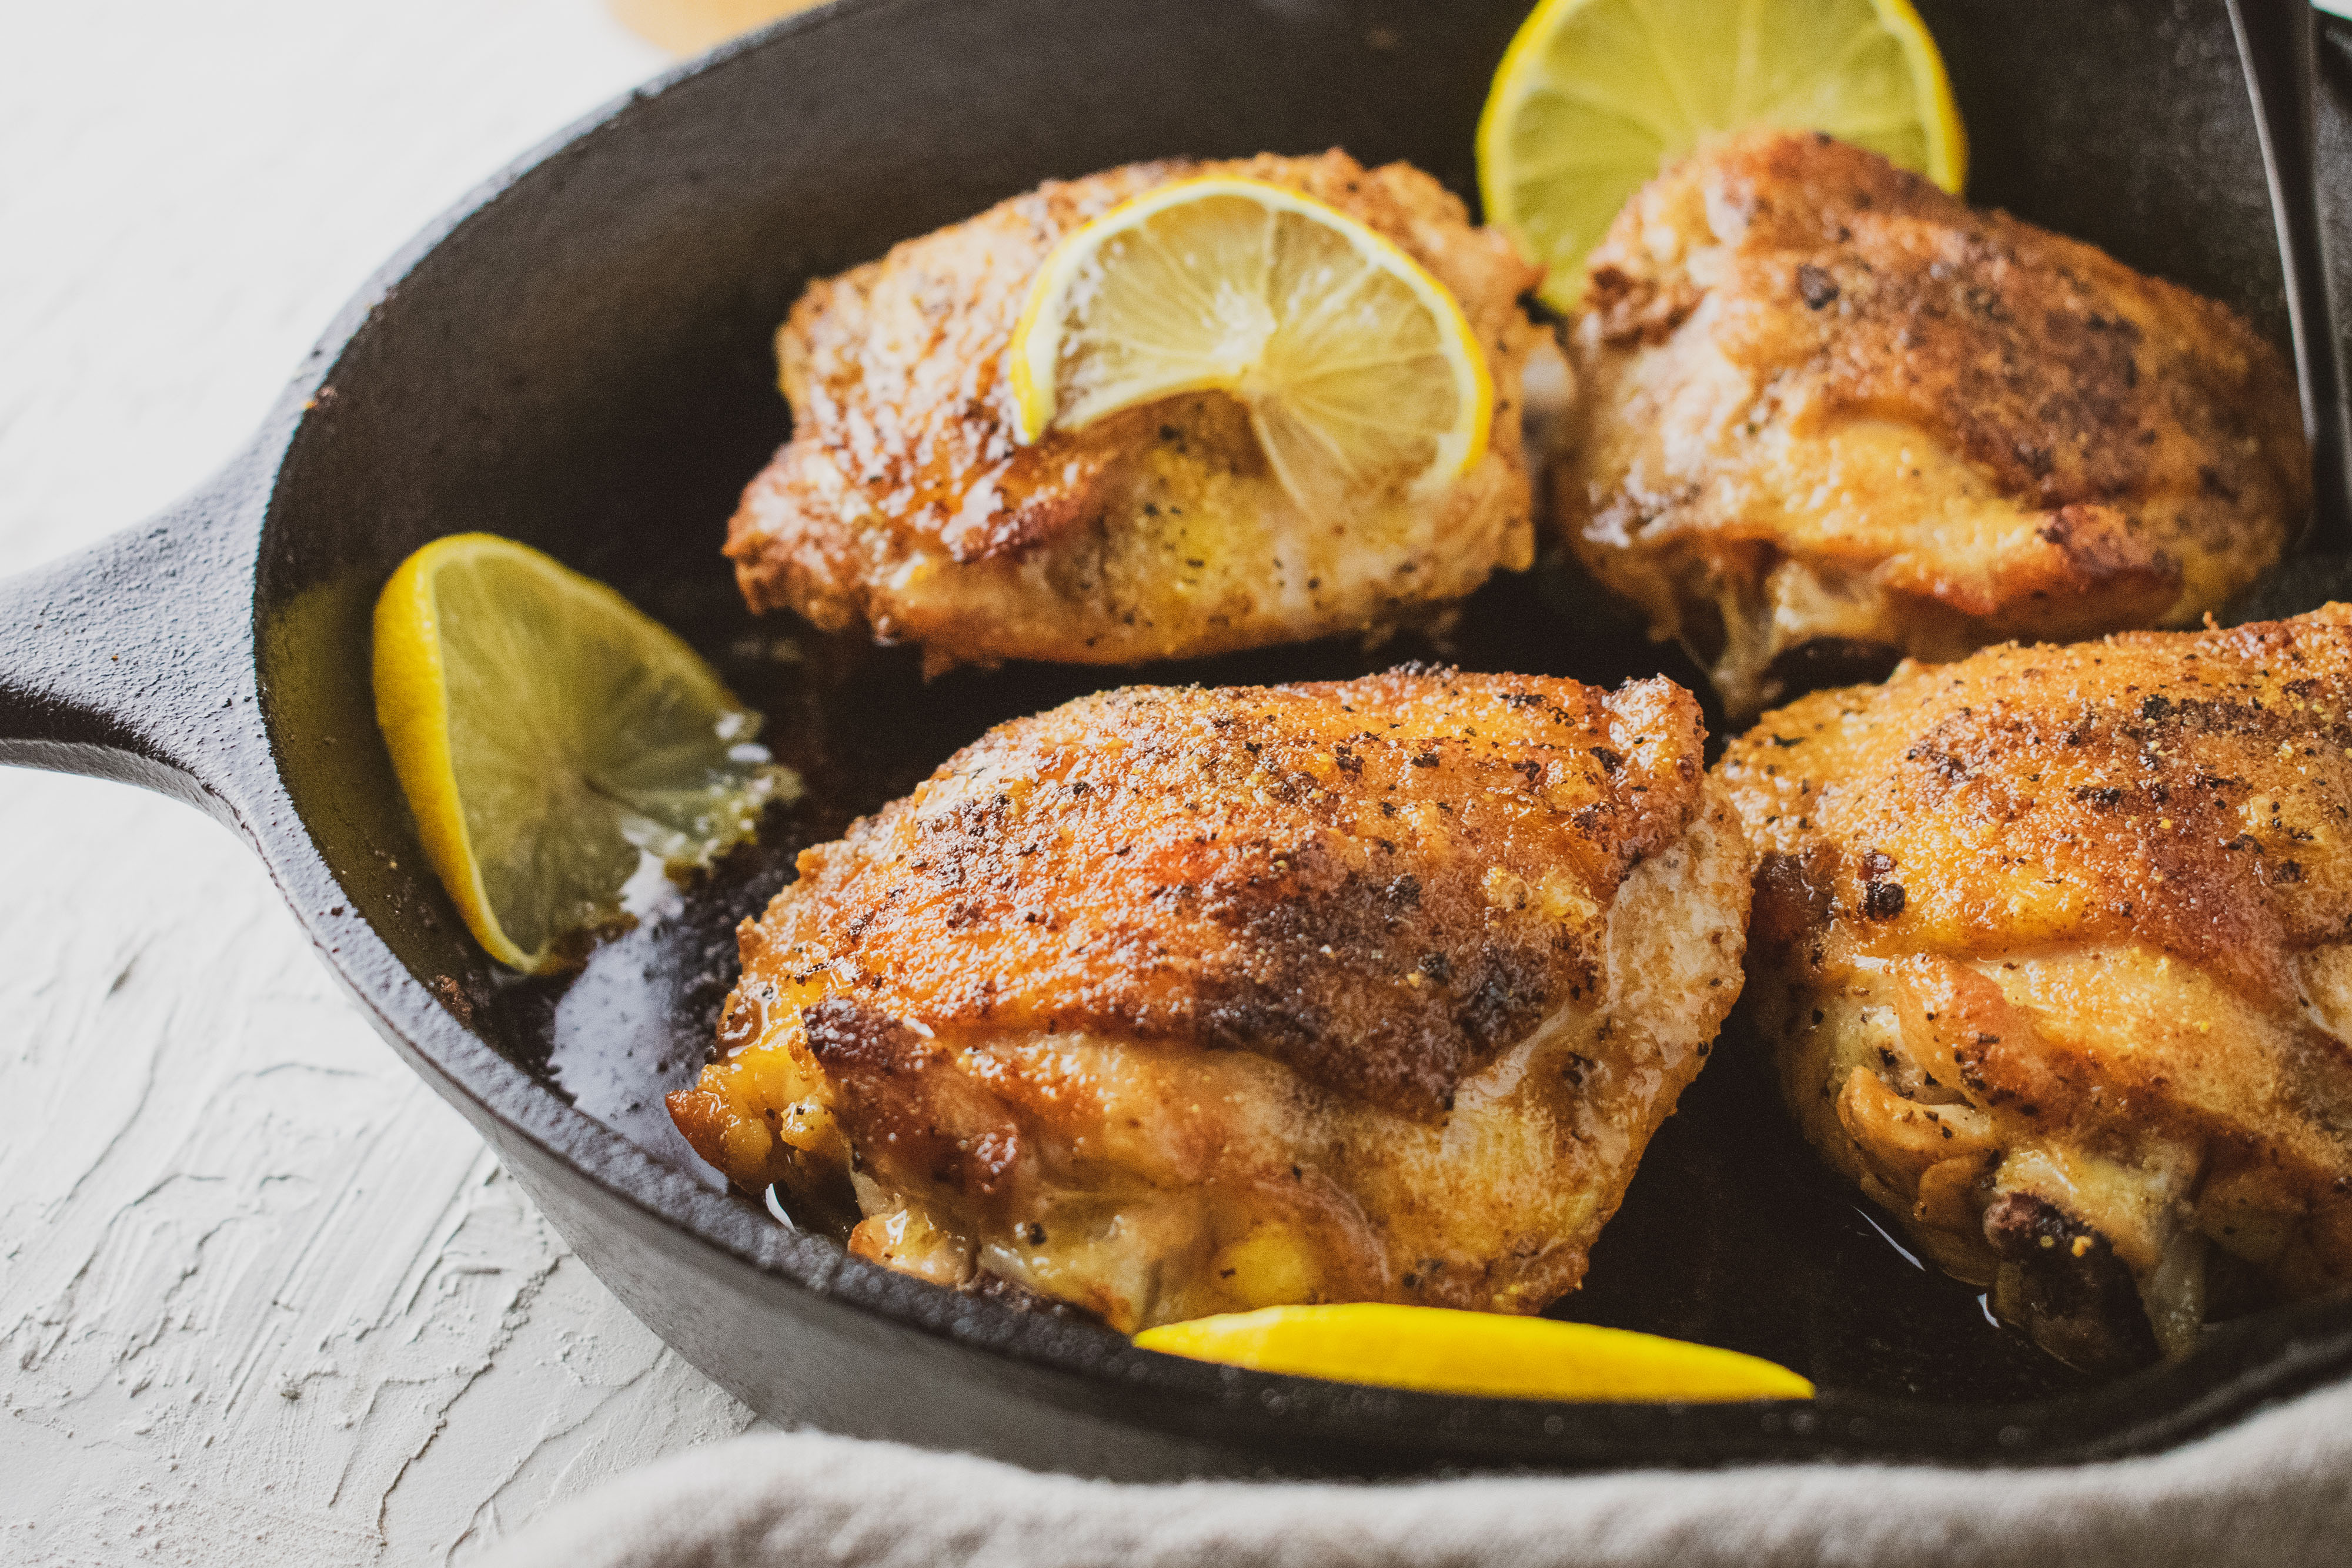 Low carb crispy chicken thighs with lemons in a cast iron skillet seasoned with lemon pepper.